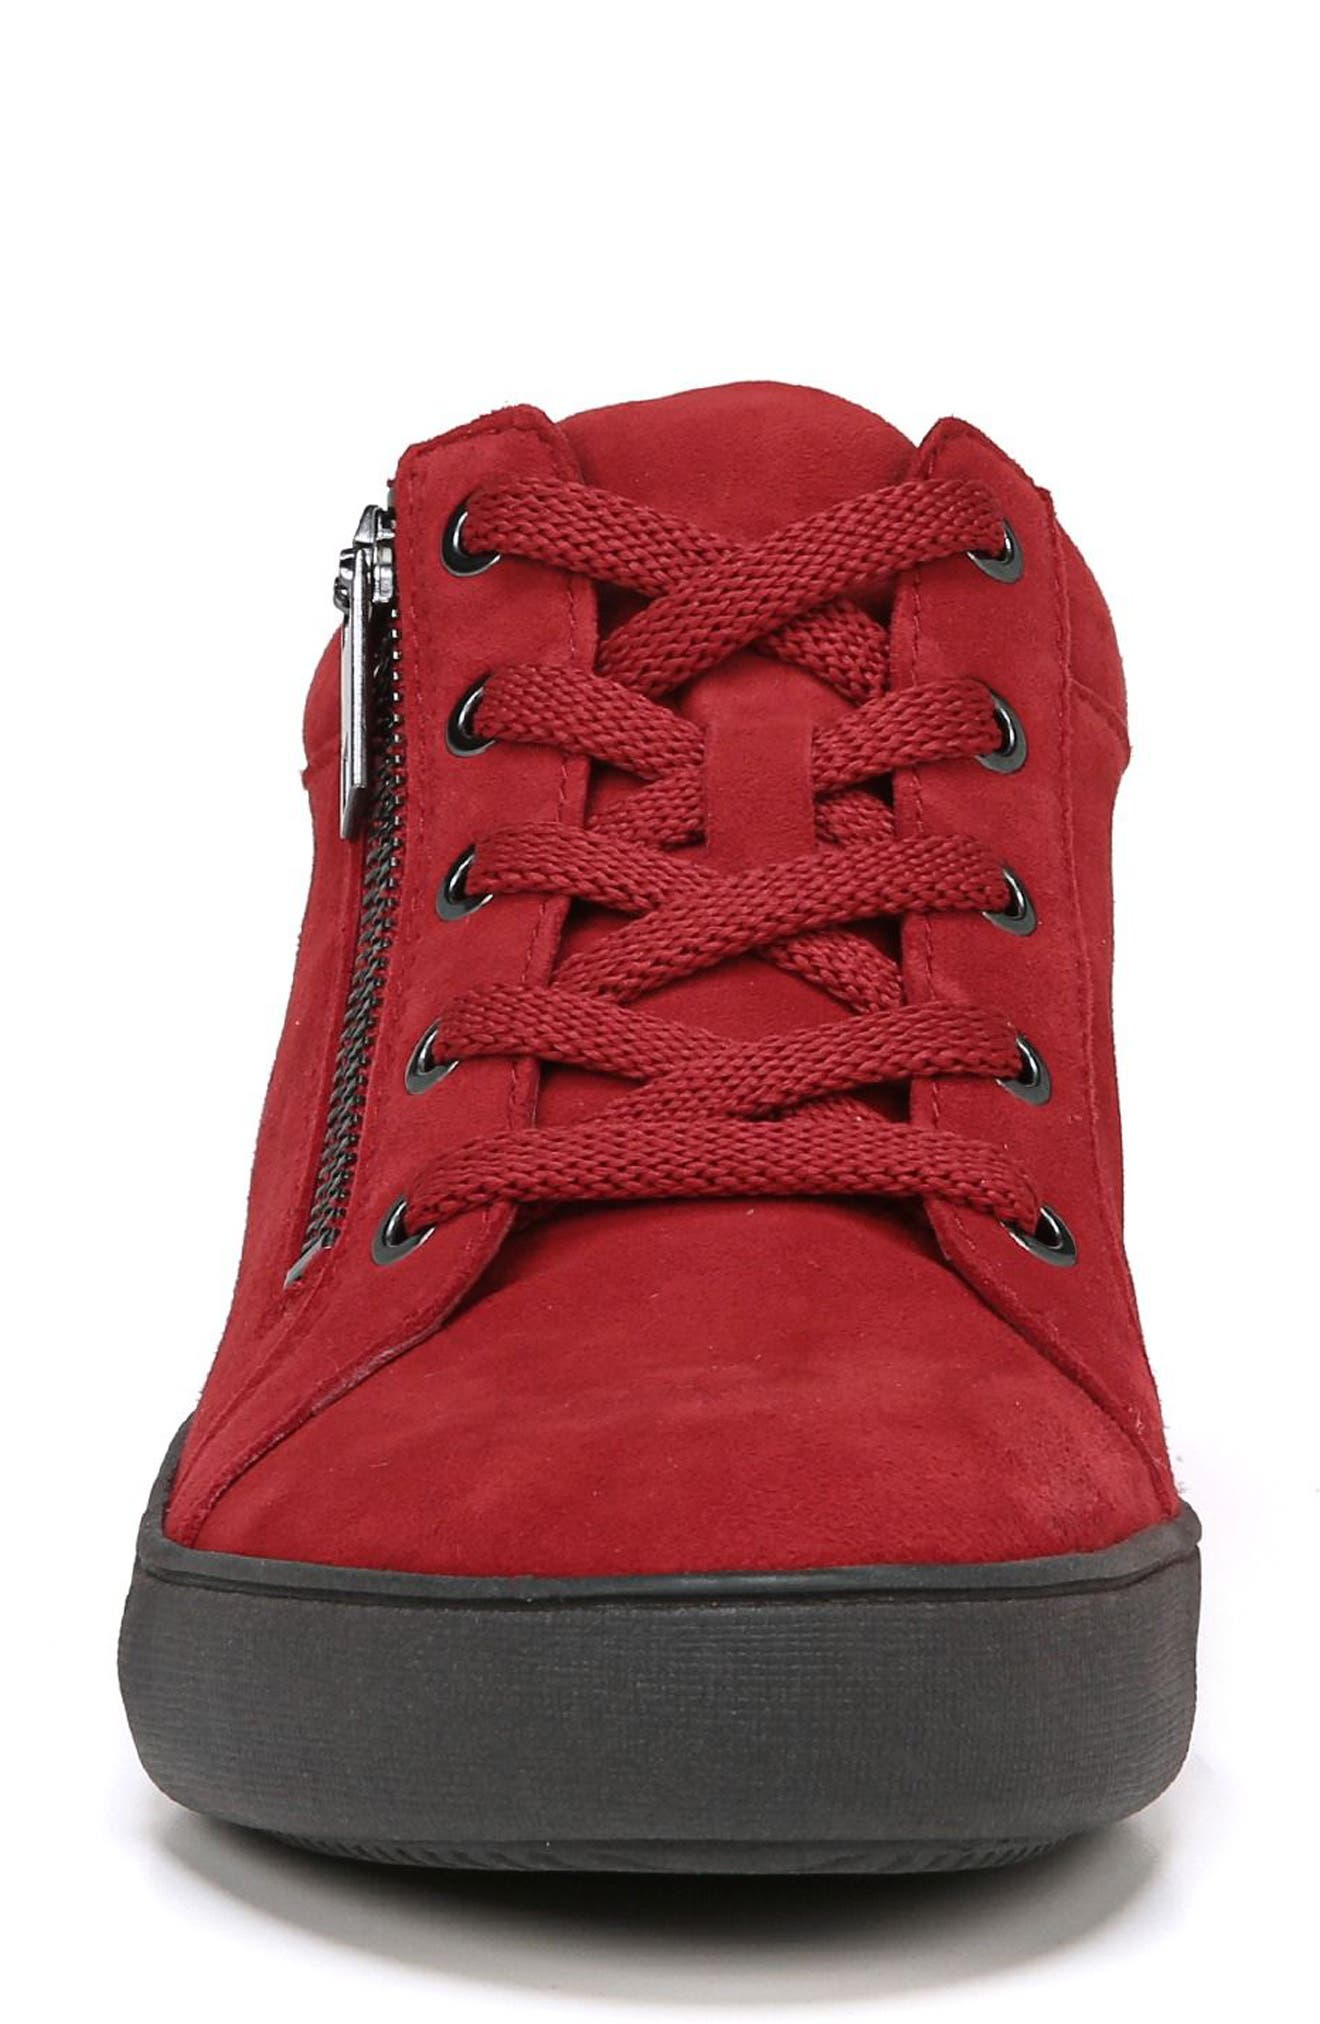 Motley Sneaker,                             Alternate thumbnail 4, color,                             Hot Sauce Suede